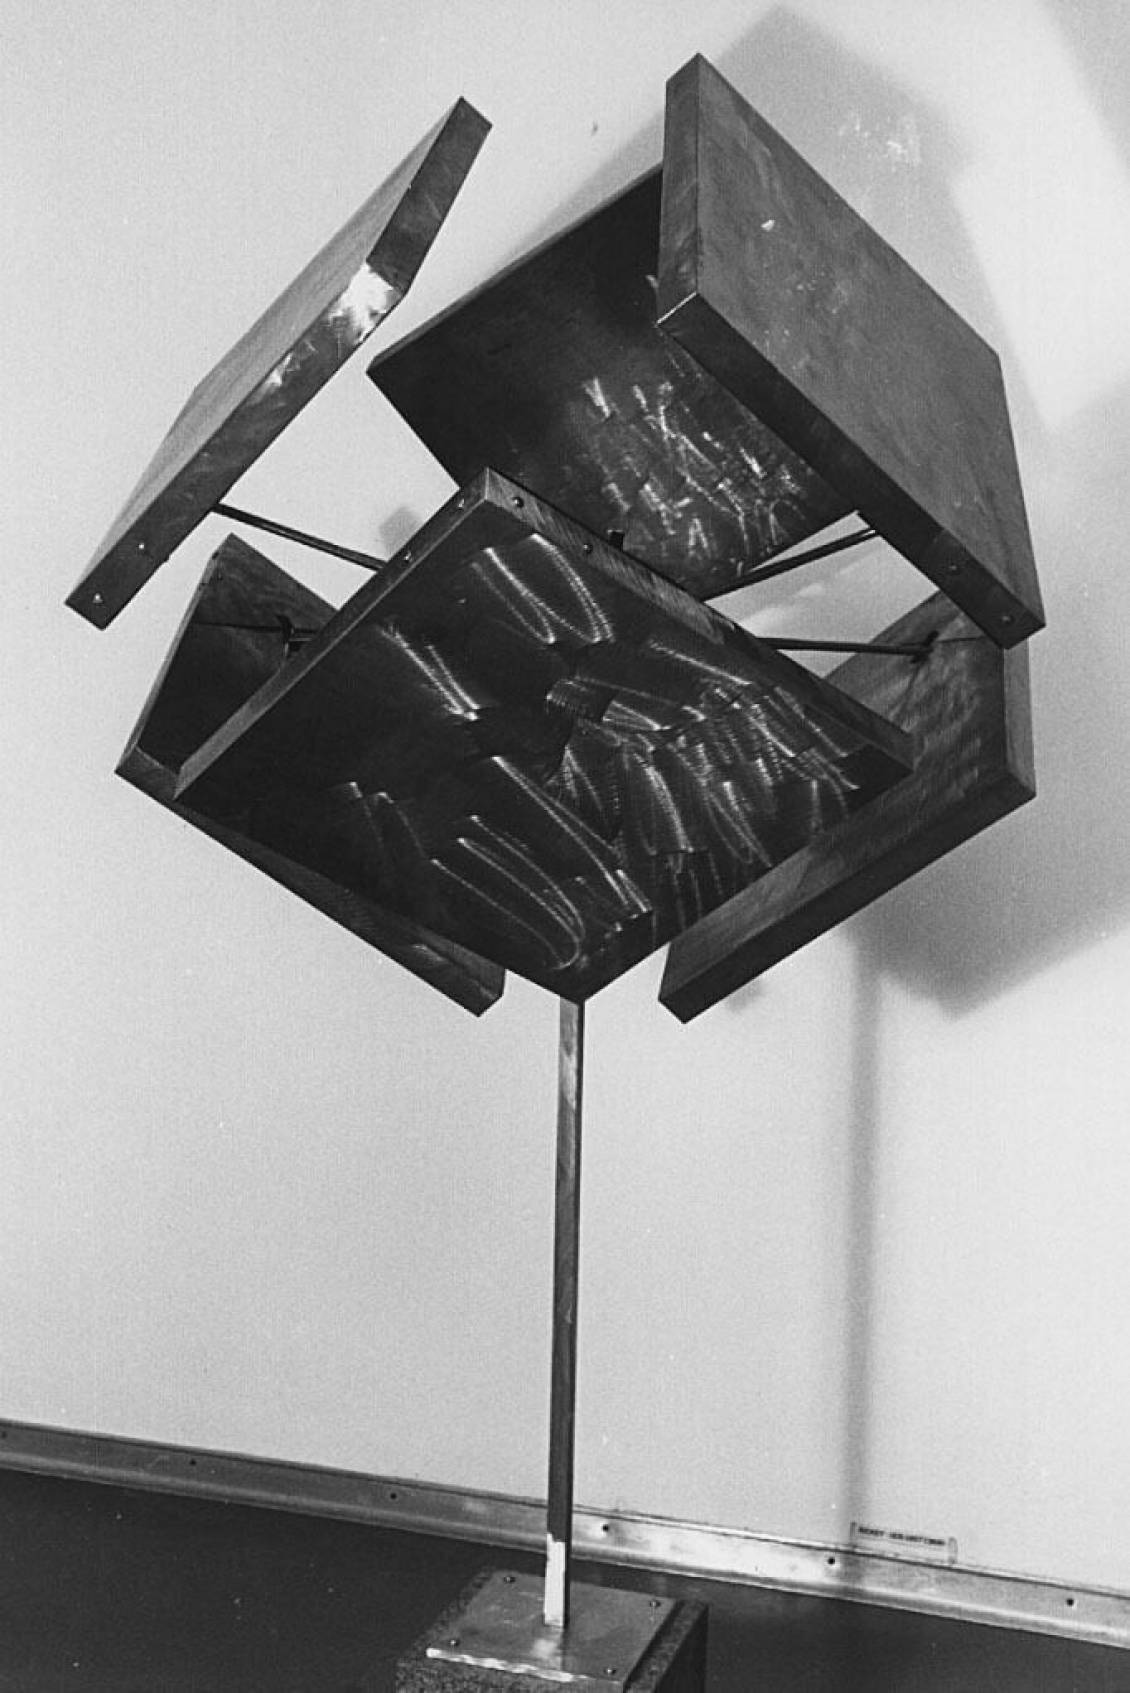 George Rickey, Unstable cube, 1968